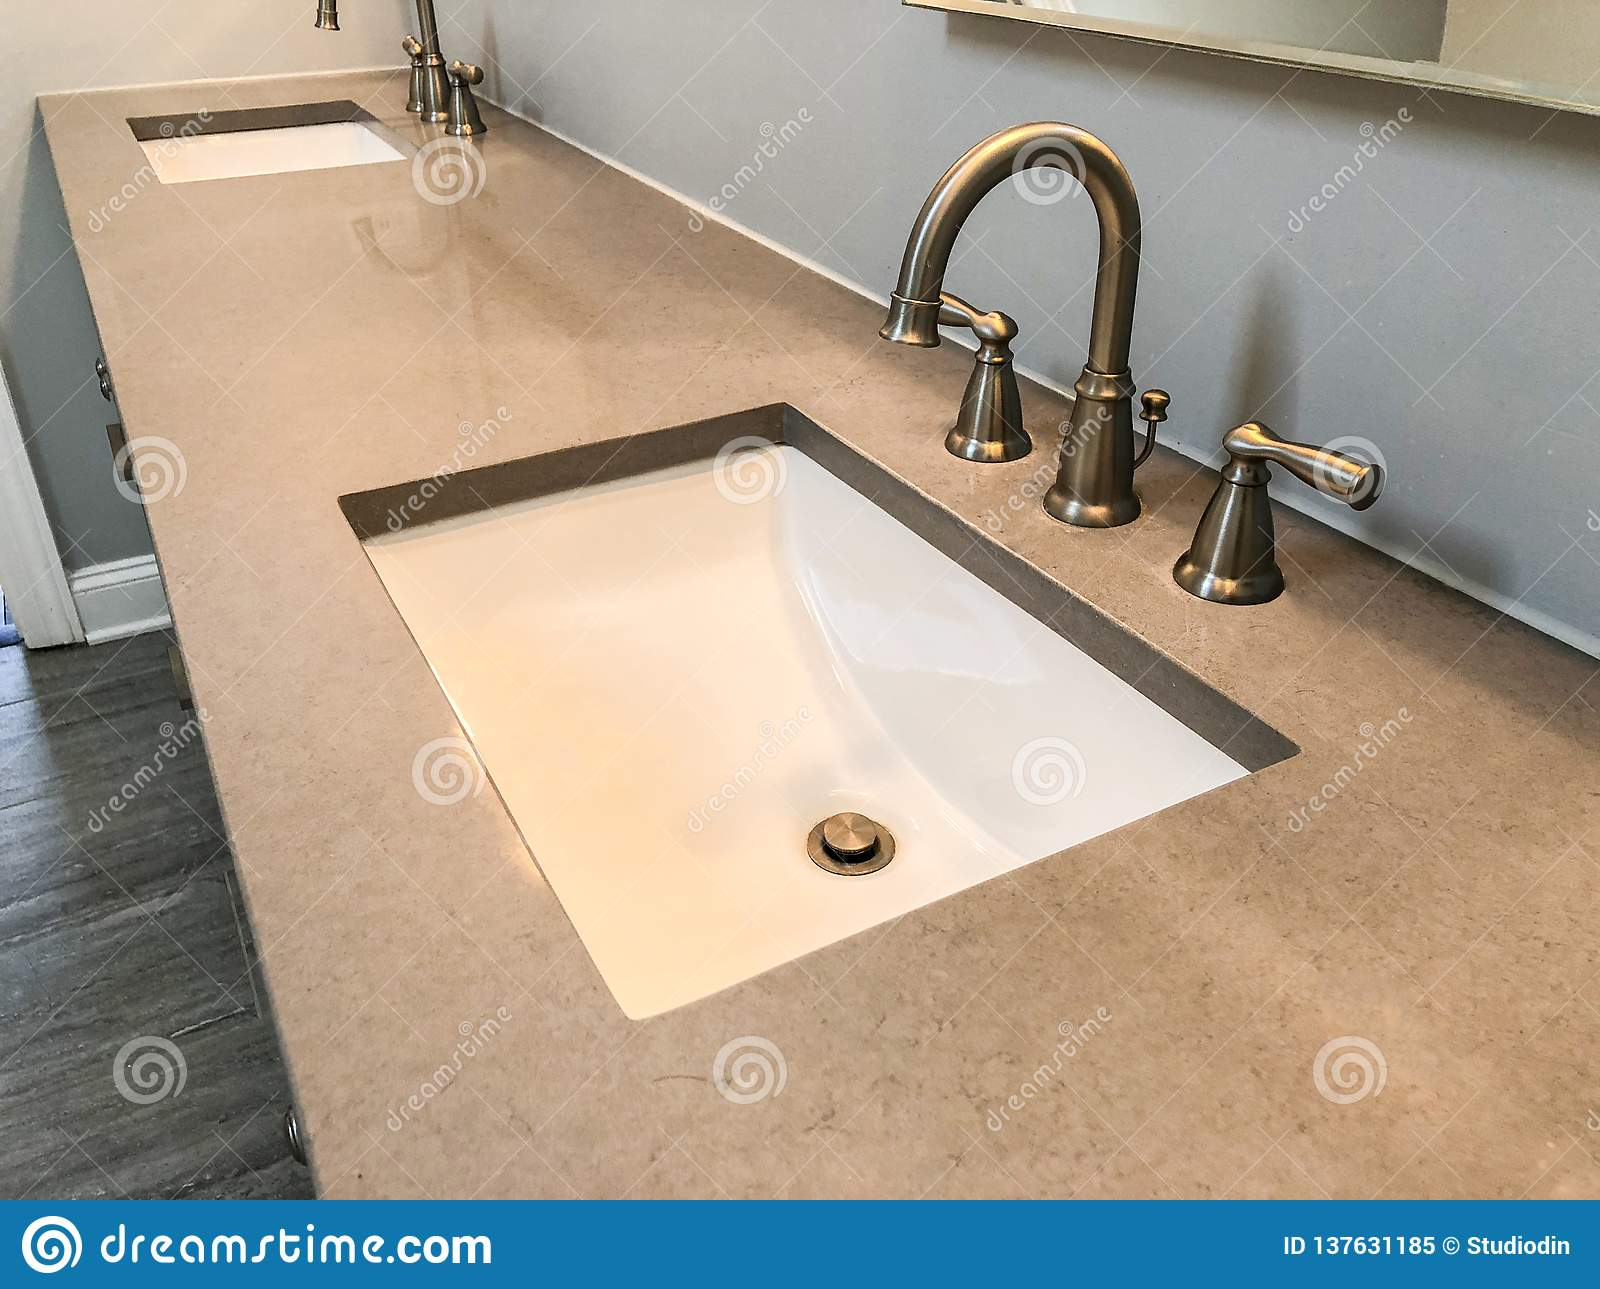 Modern bathroom with quartz countertop, two sinks and faucets with stone floor